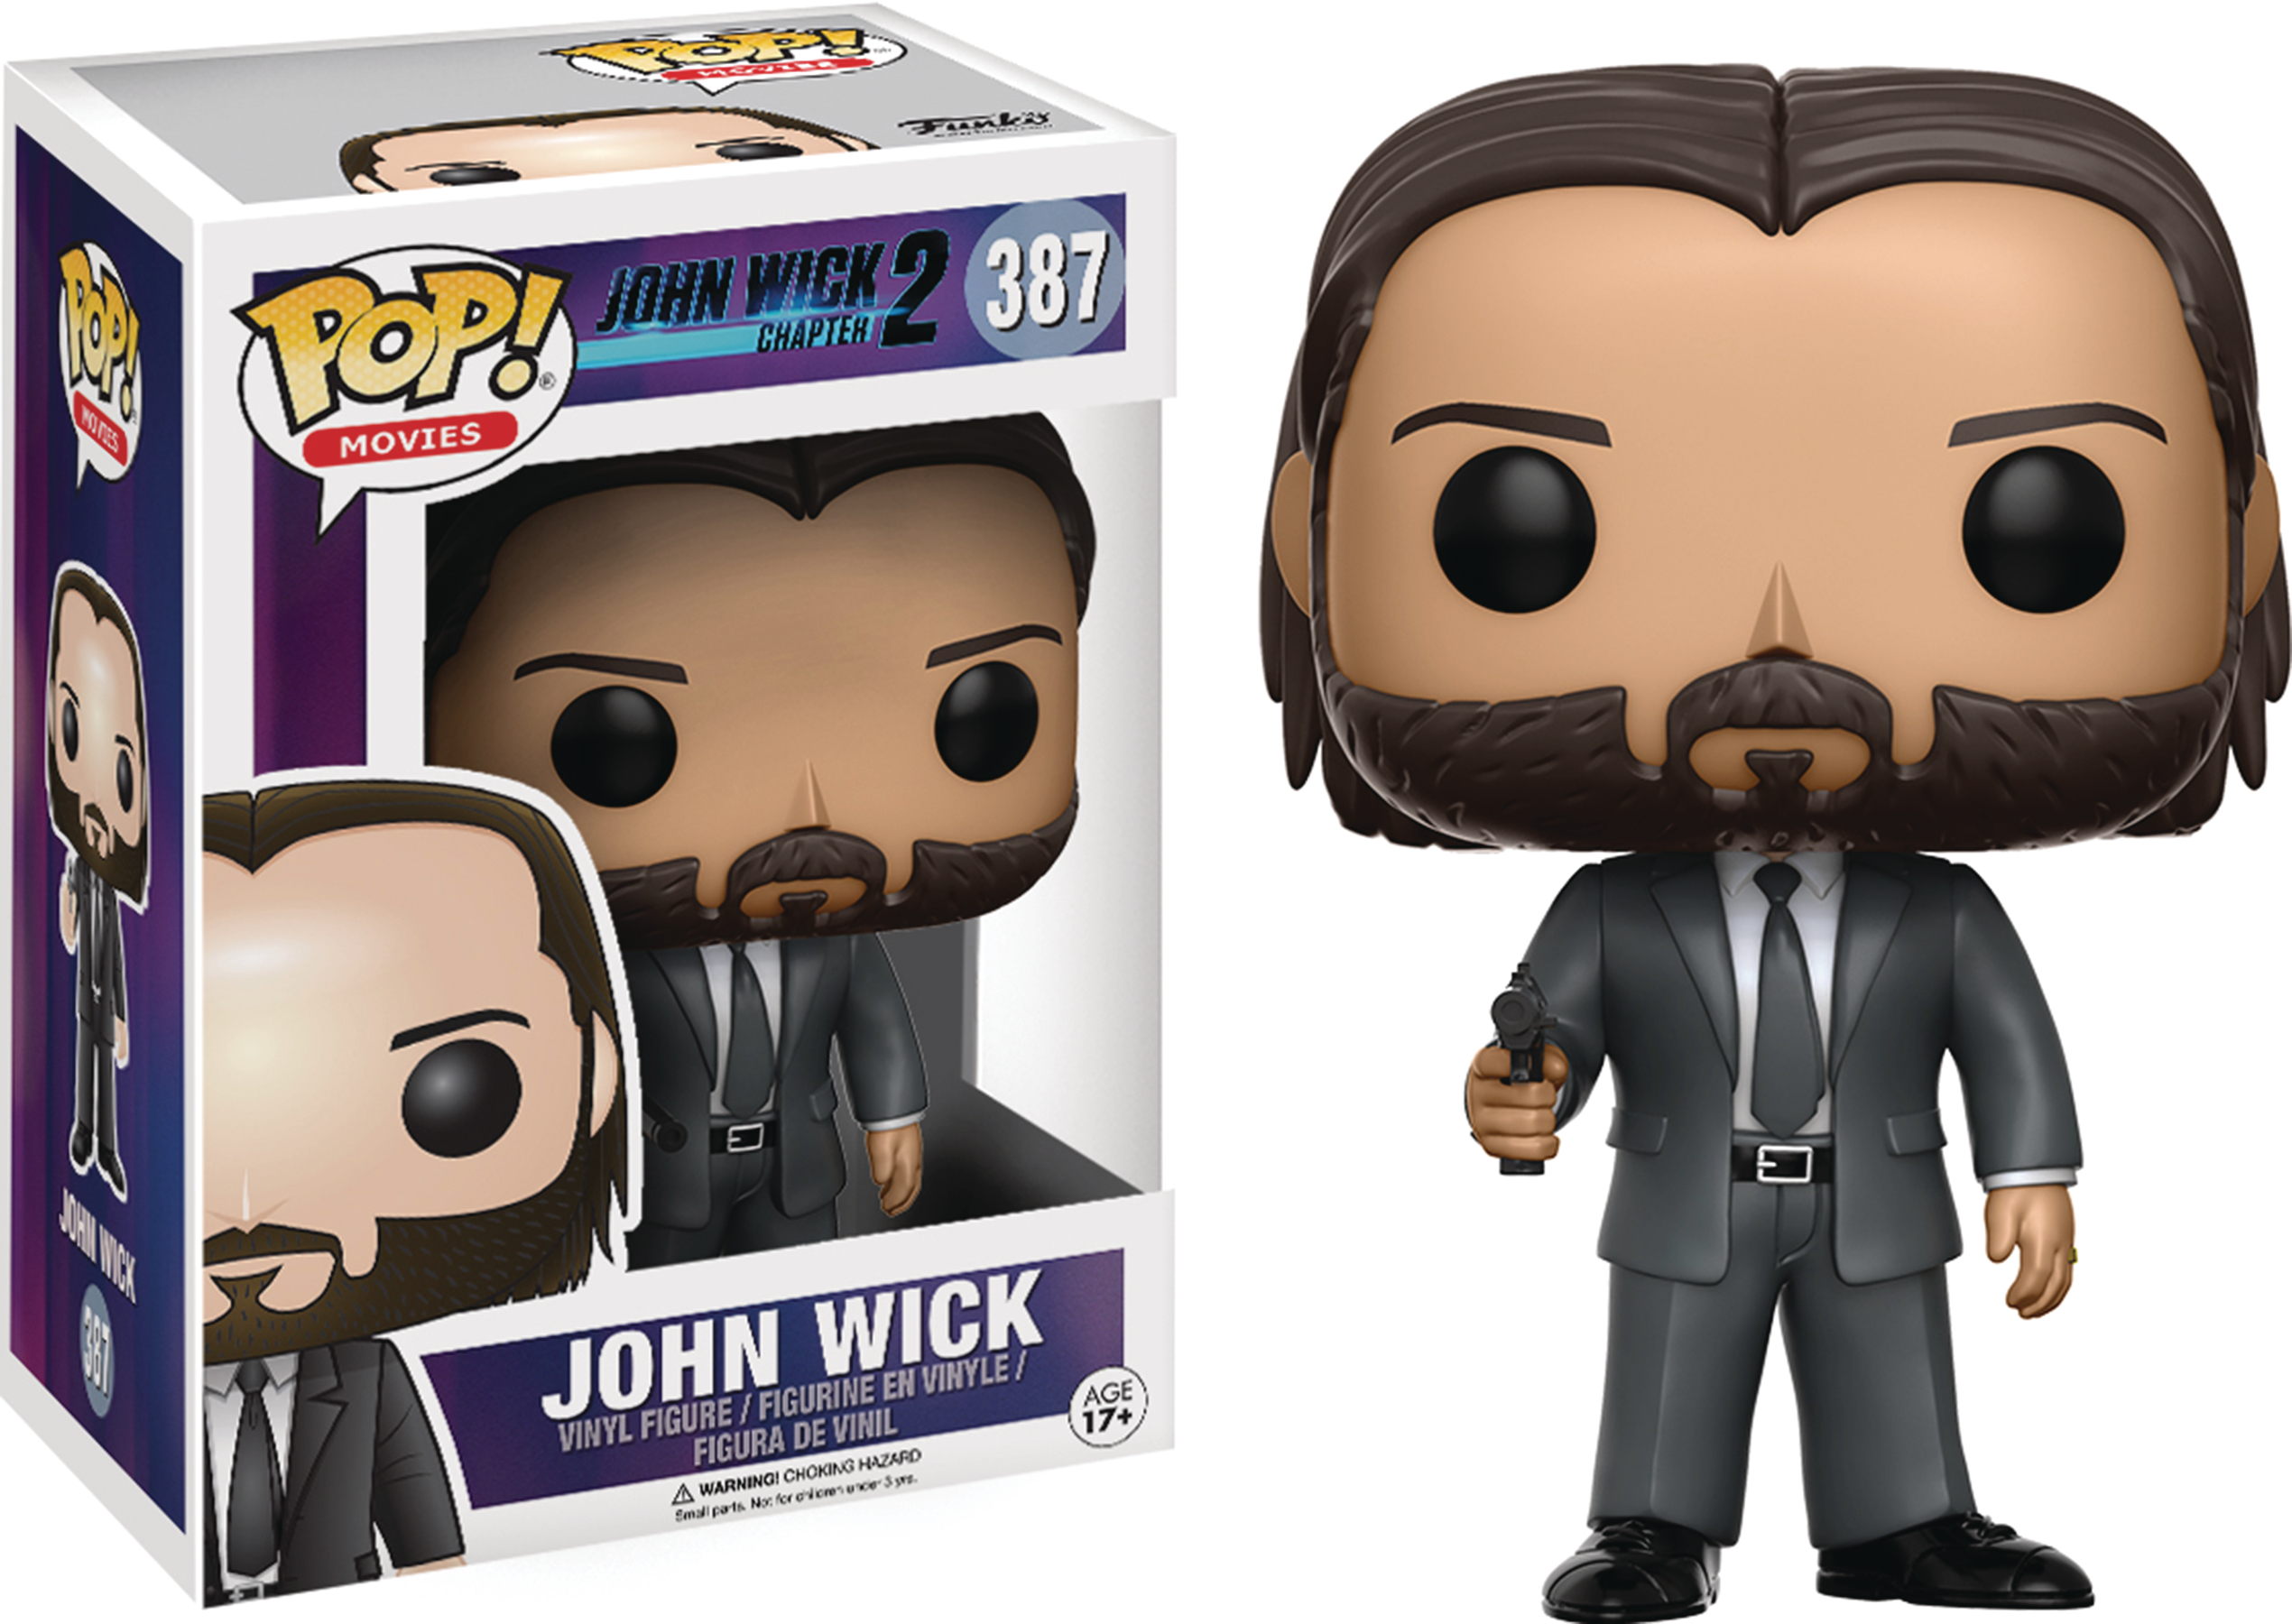 POP MOVIES JOHN WICK VINYL FIG